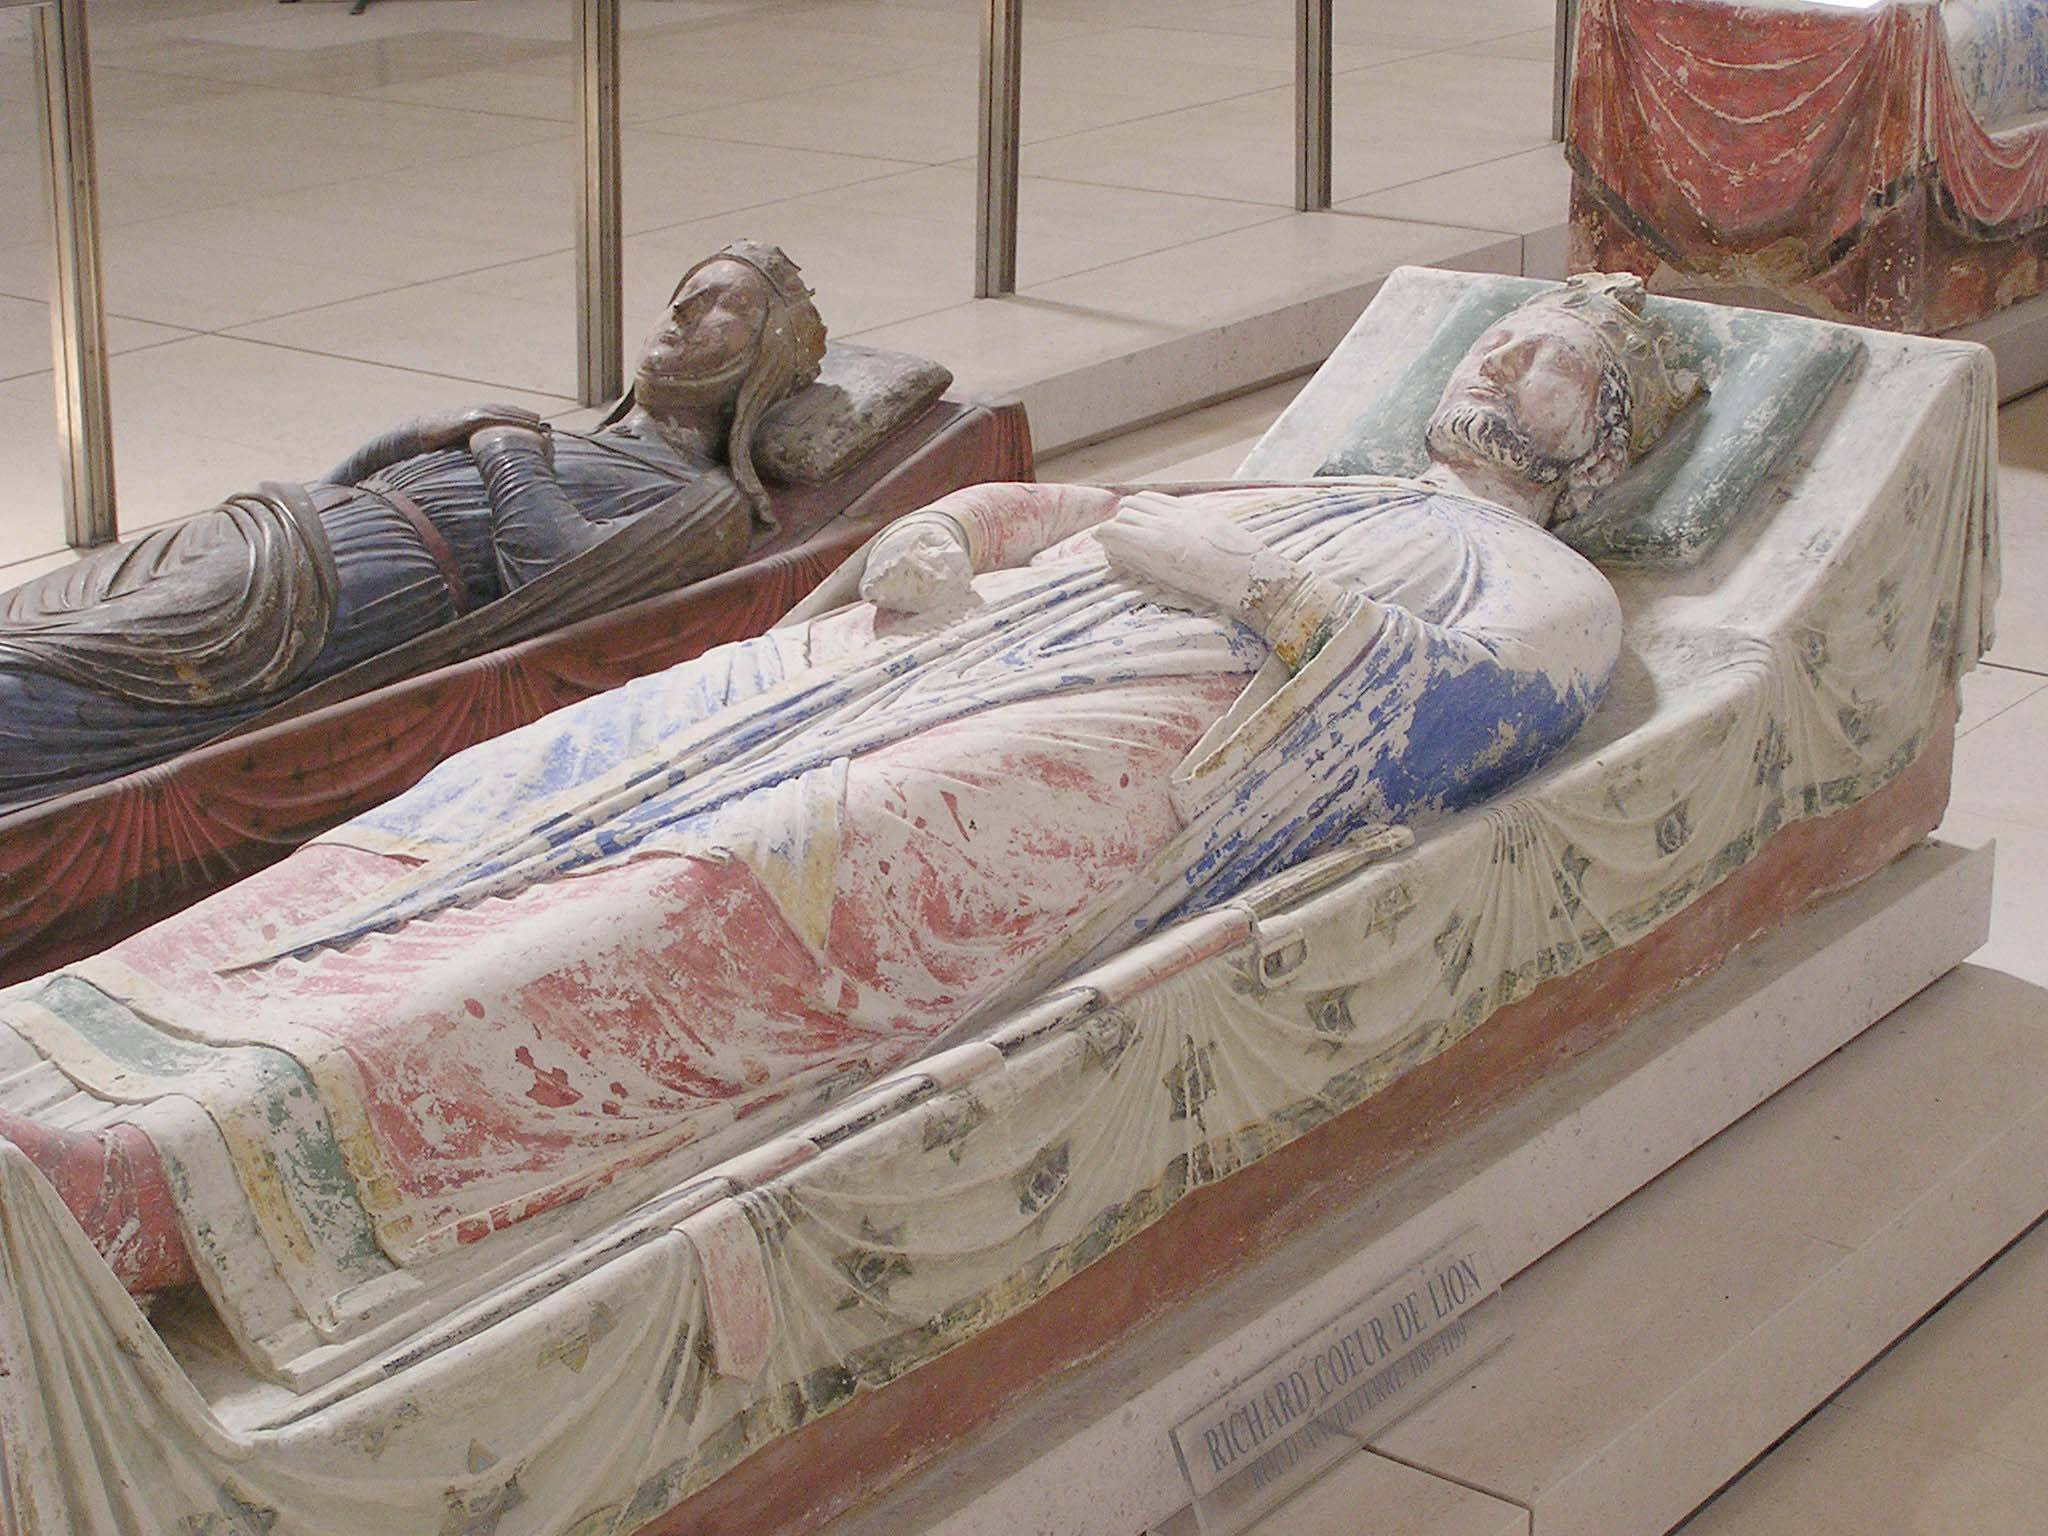 We performed a full biomedical analysis of the mummified heart of the English King Richard I (1199 A.D.). Here we show among other aspects, that the organ has been embalmed using substances inspired by Biblical texts and practical necessities of desiccation